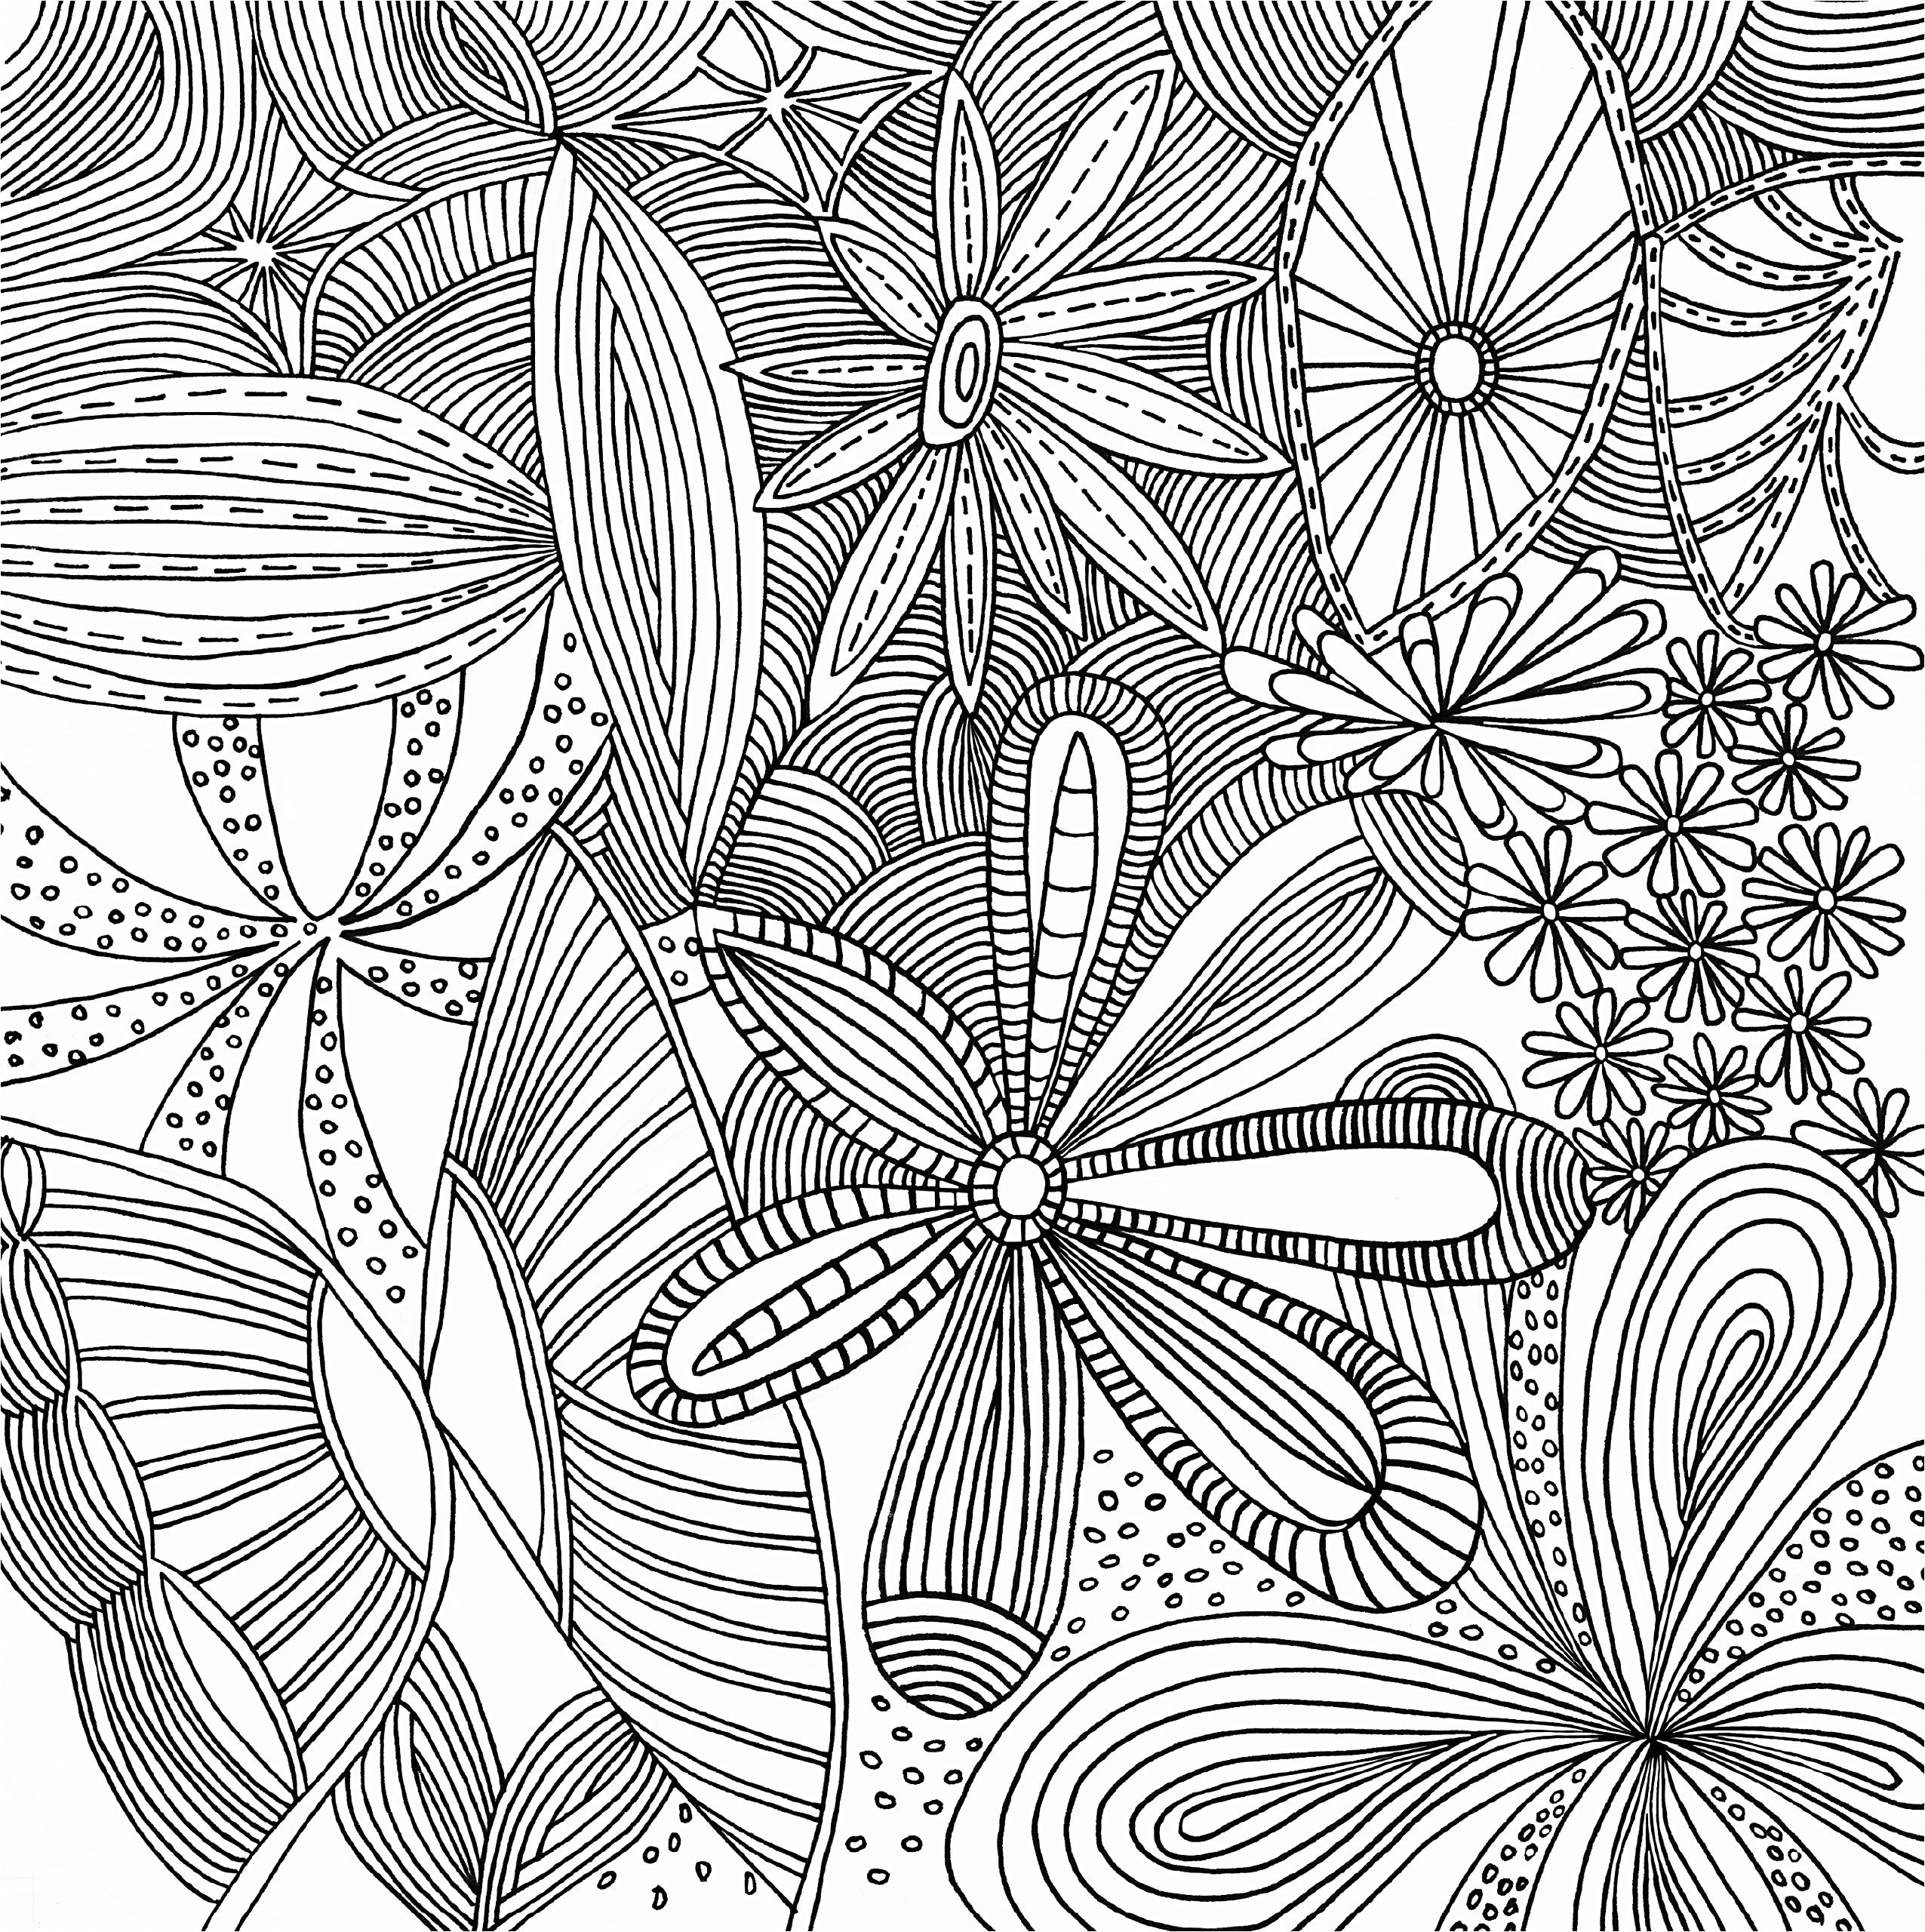 2551x2560 Detailed Coloring Pages Lovely Coloring Pages Patterns Cool